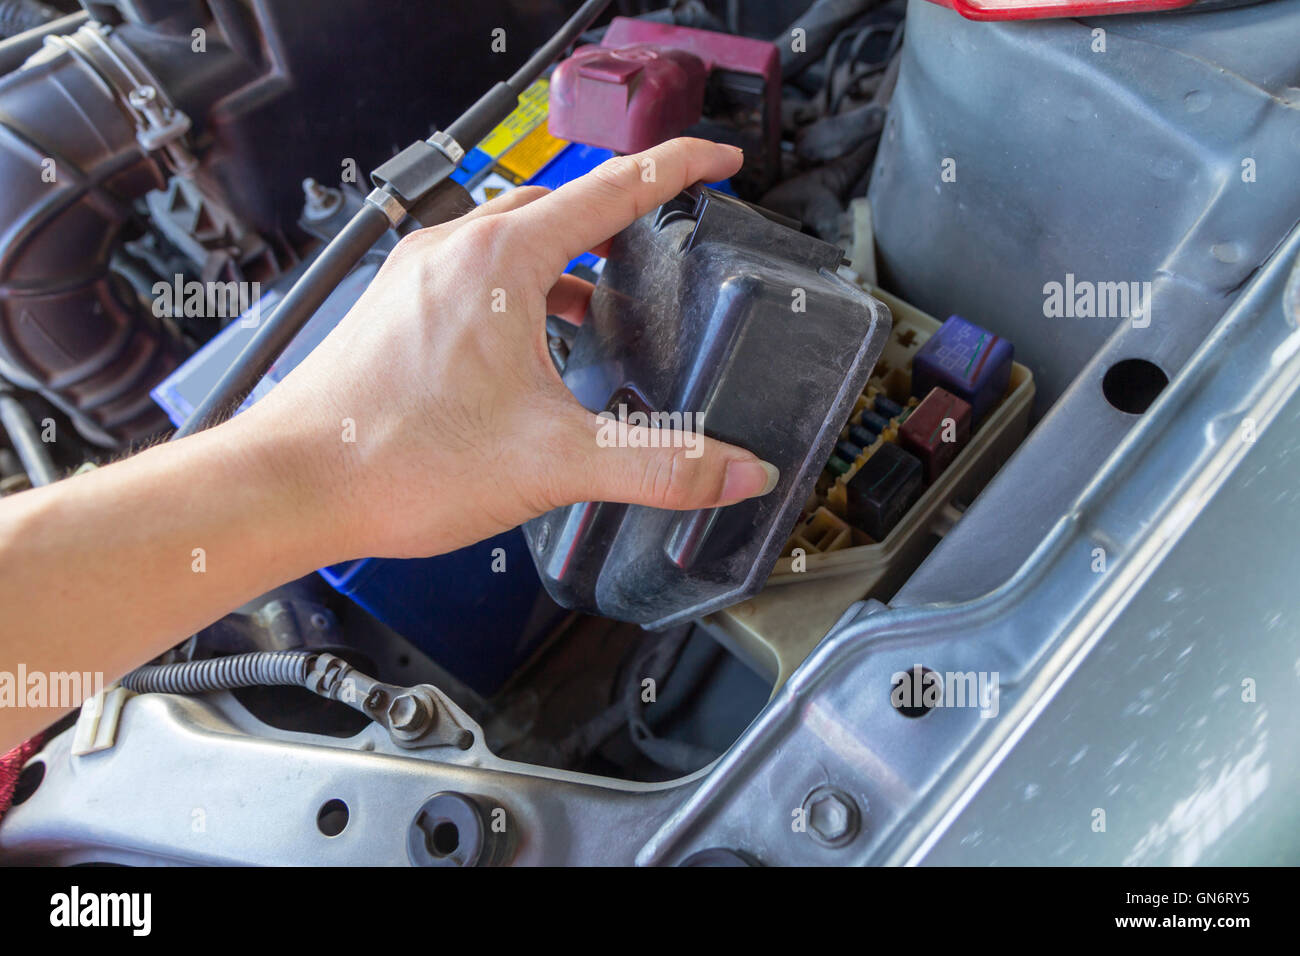 Old Fuses Fuse Box Stock Photos Images Automotive Upgrade The Man Opening Of Car Image